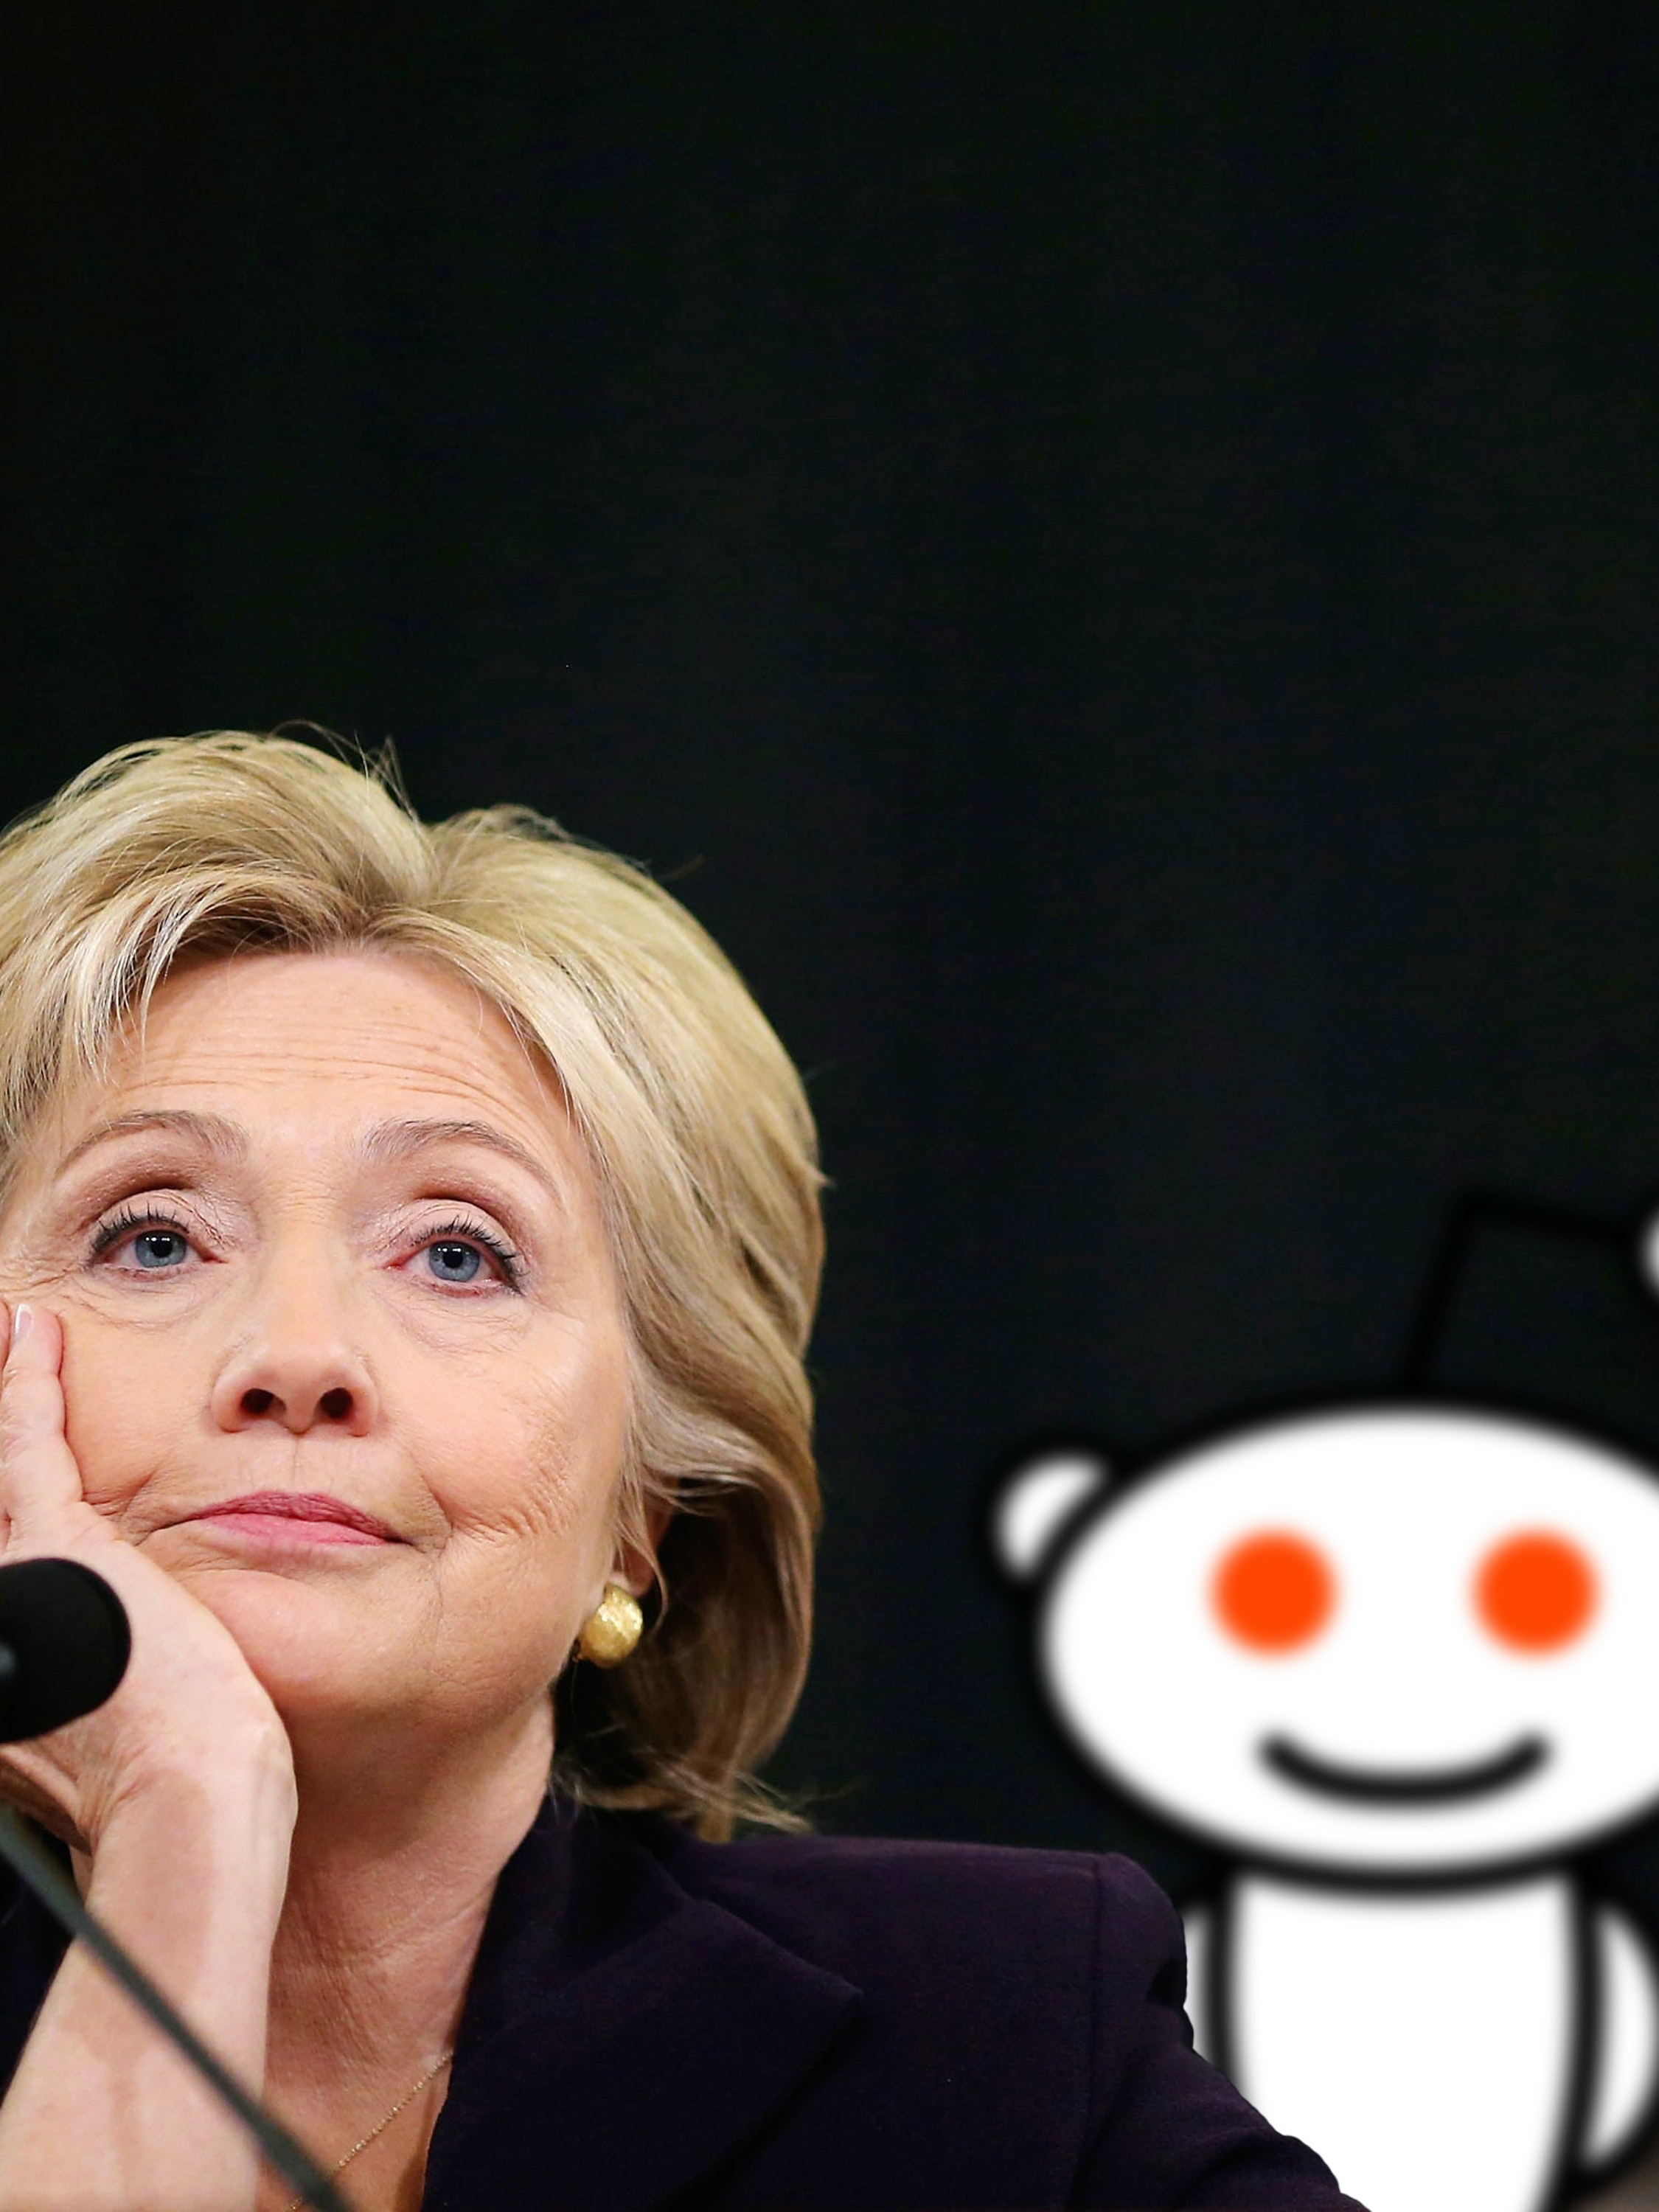 Hillary Clinton during the Benghazi scandals with the Reddit Snoo alien superimposed in the background.